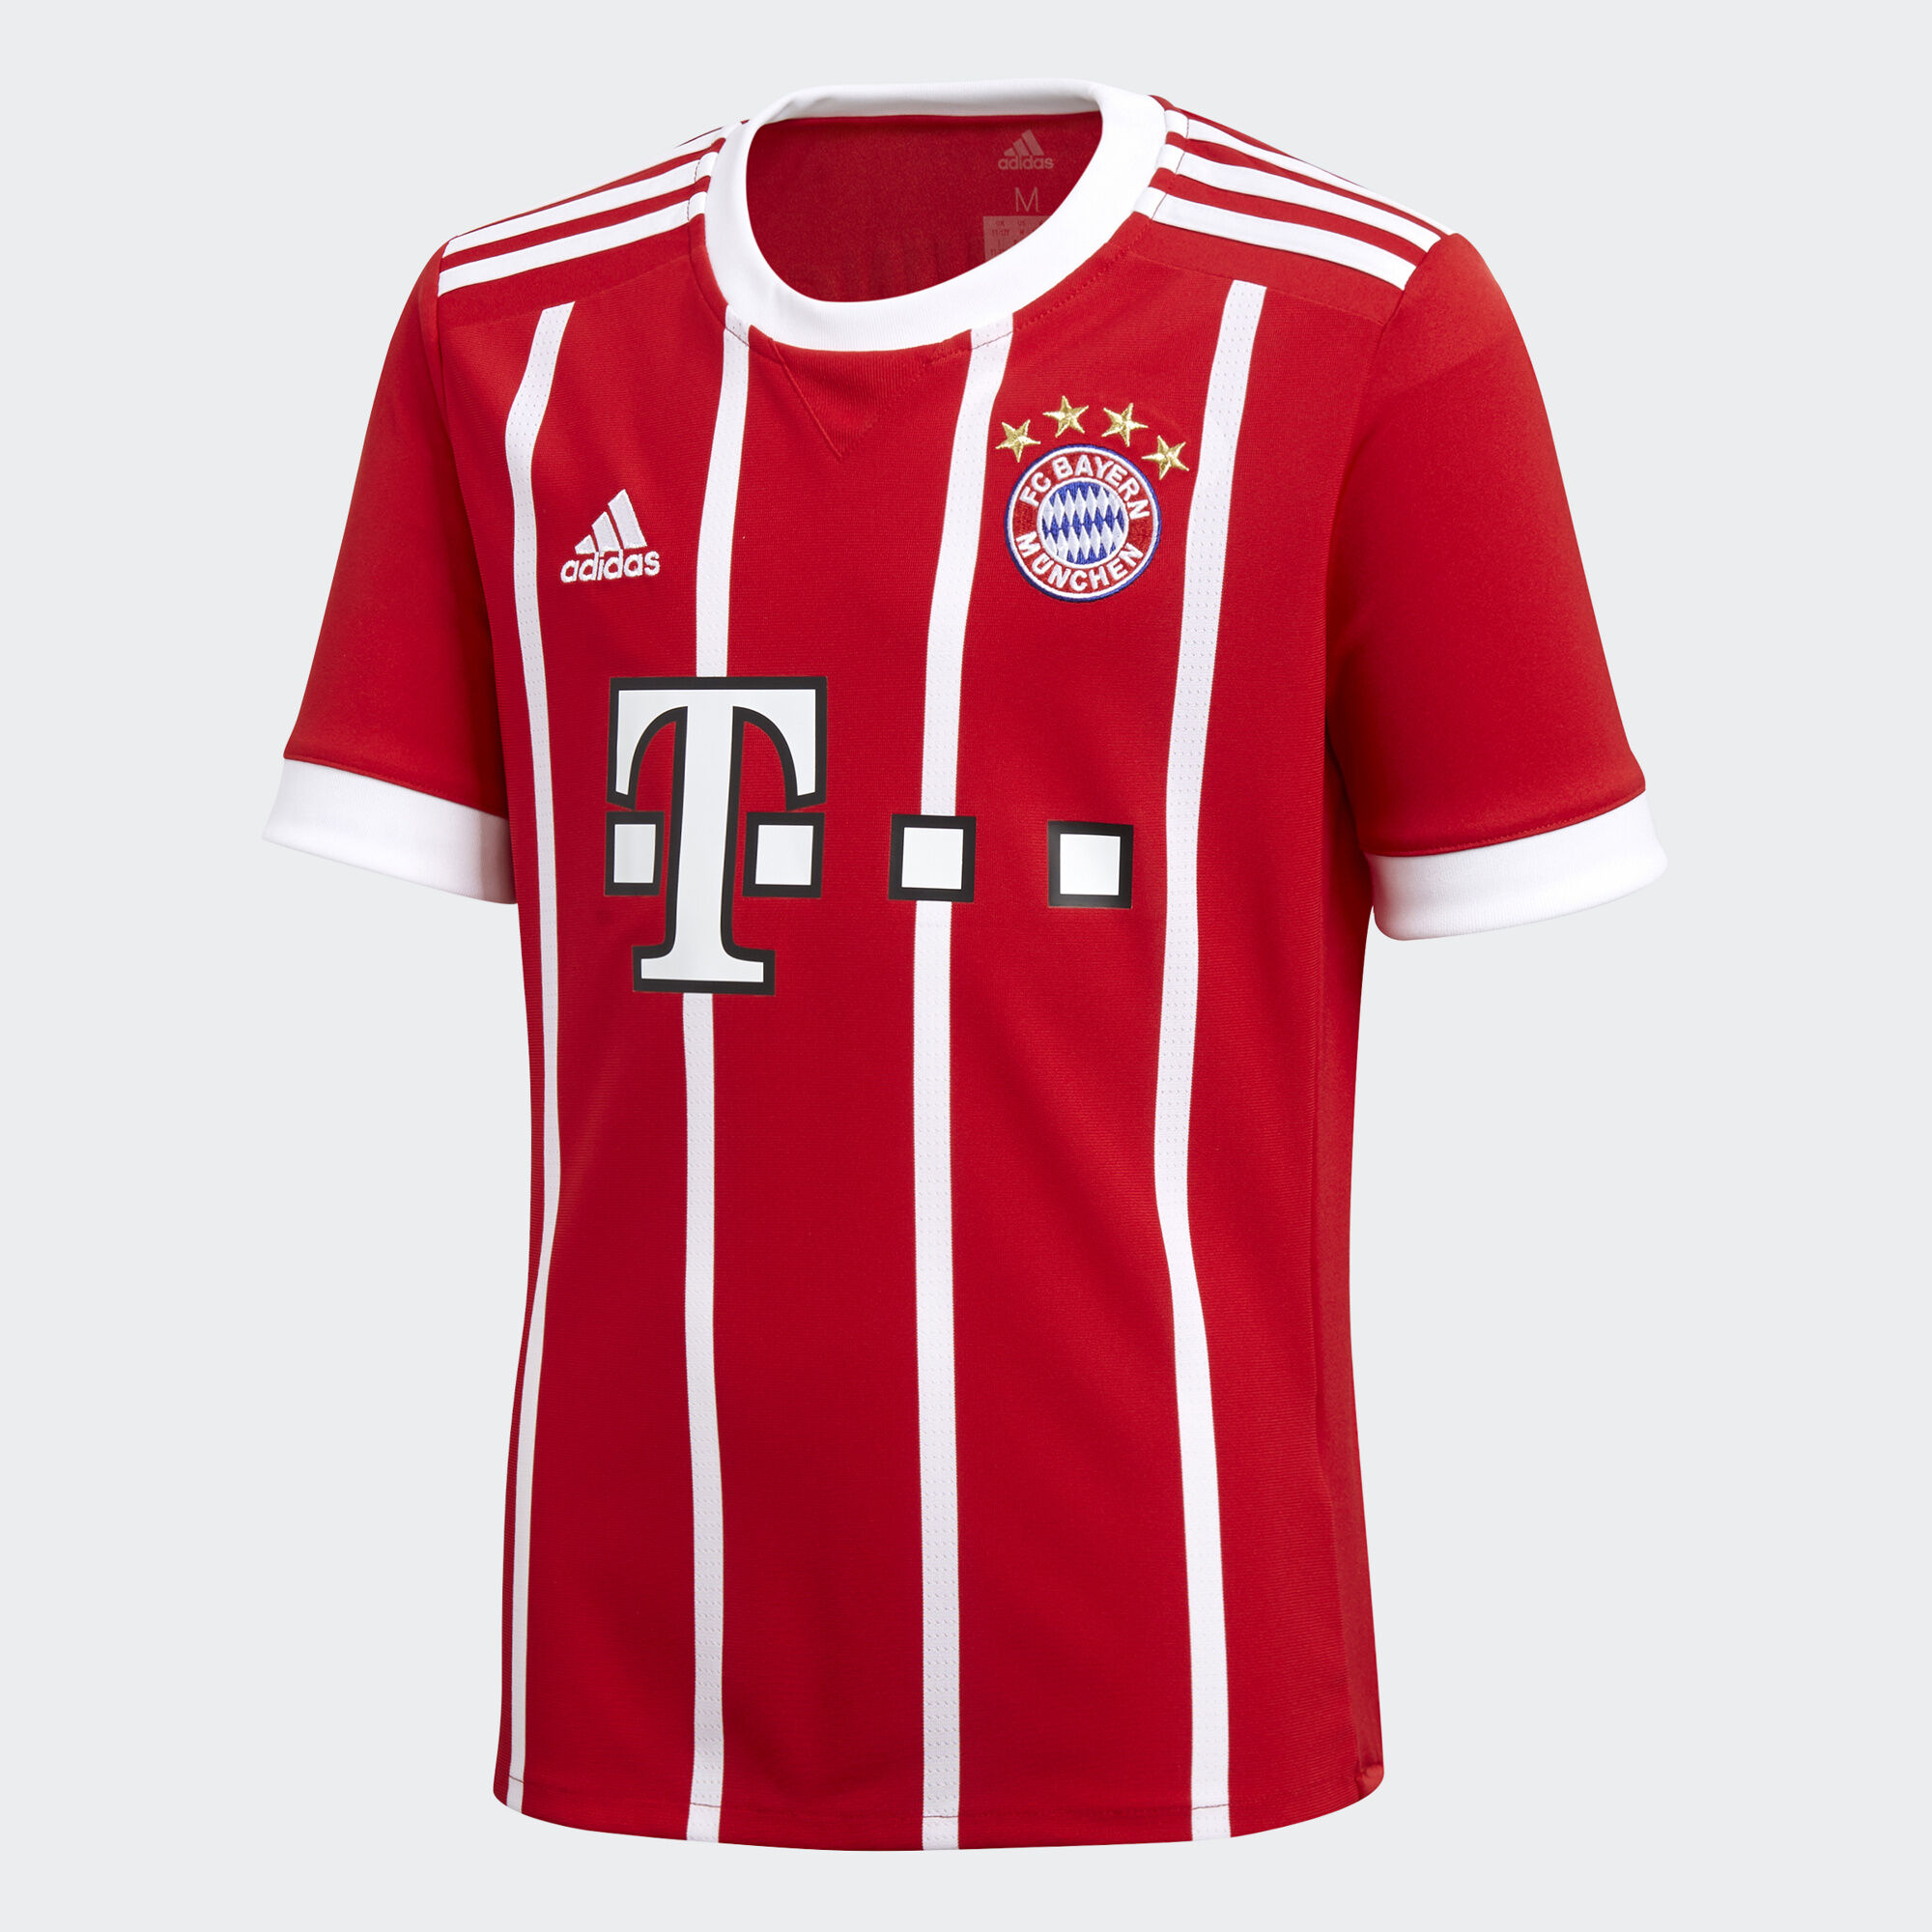 adidas fc bayern munich home replica jersey red adidas us. Black Bedroom Furniture Sets. Home Design Ideas